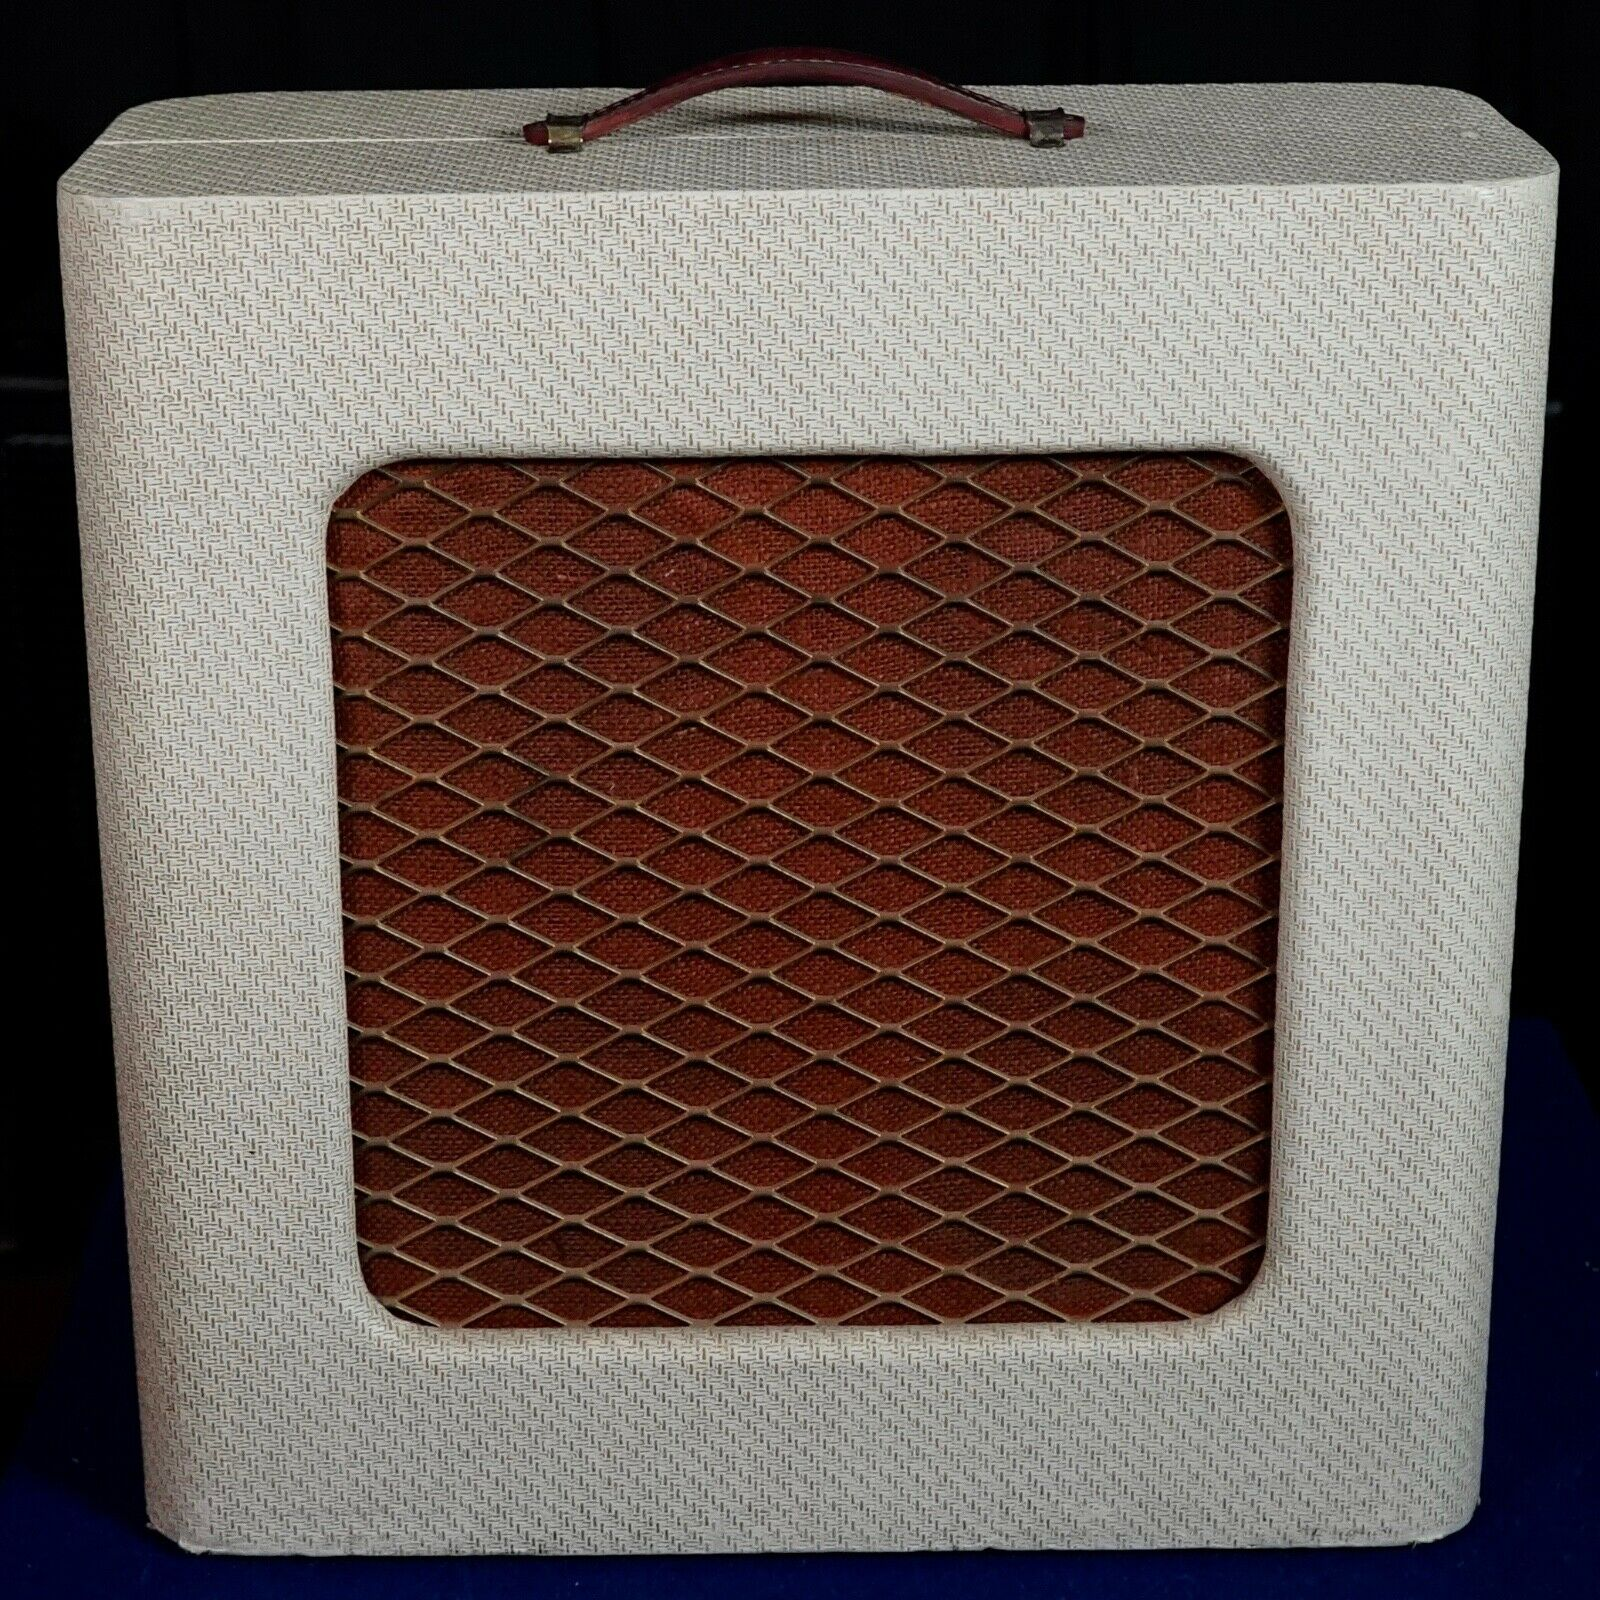 1957 Montgomery Ward Commando Amplifier. Available Now for 4499.00